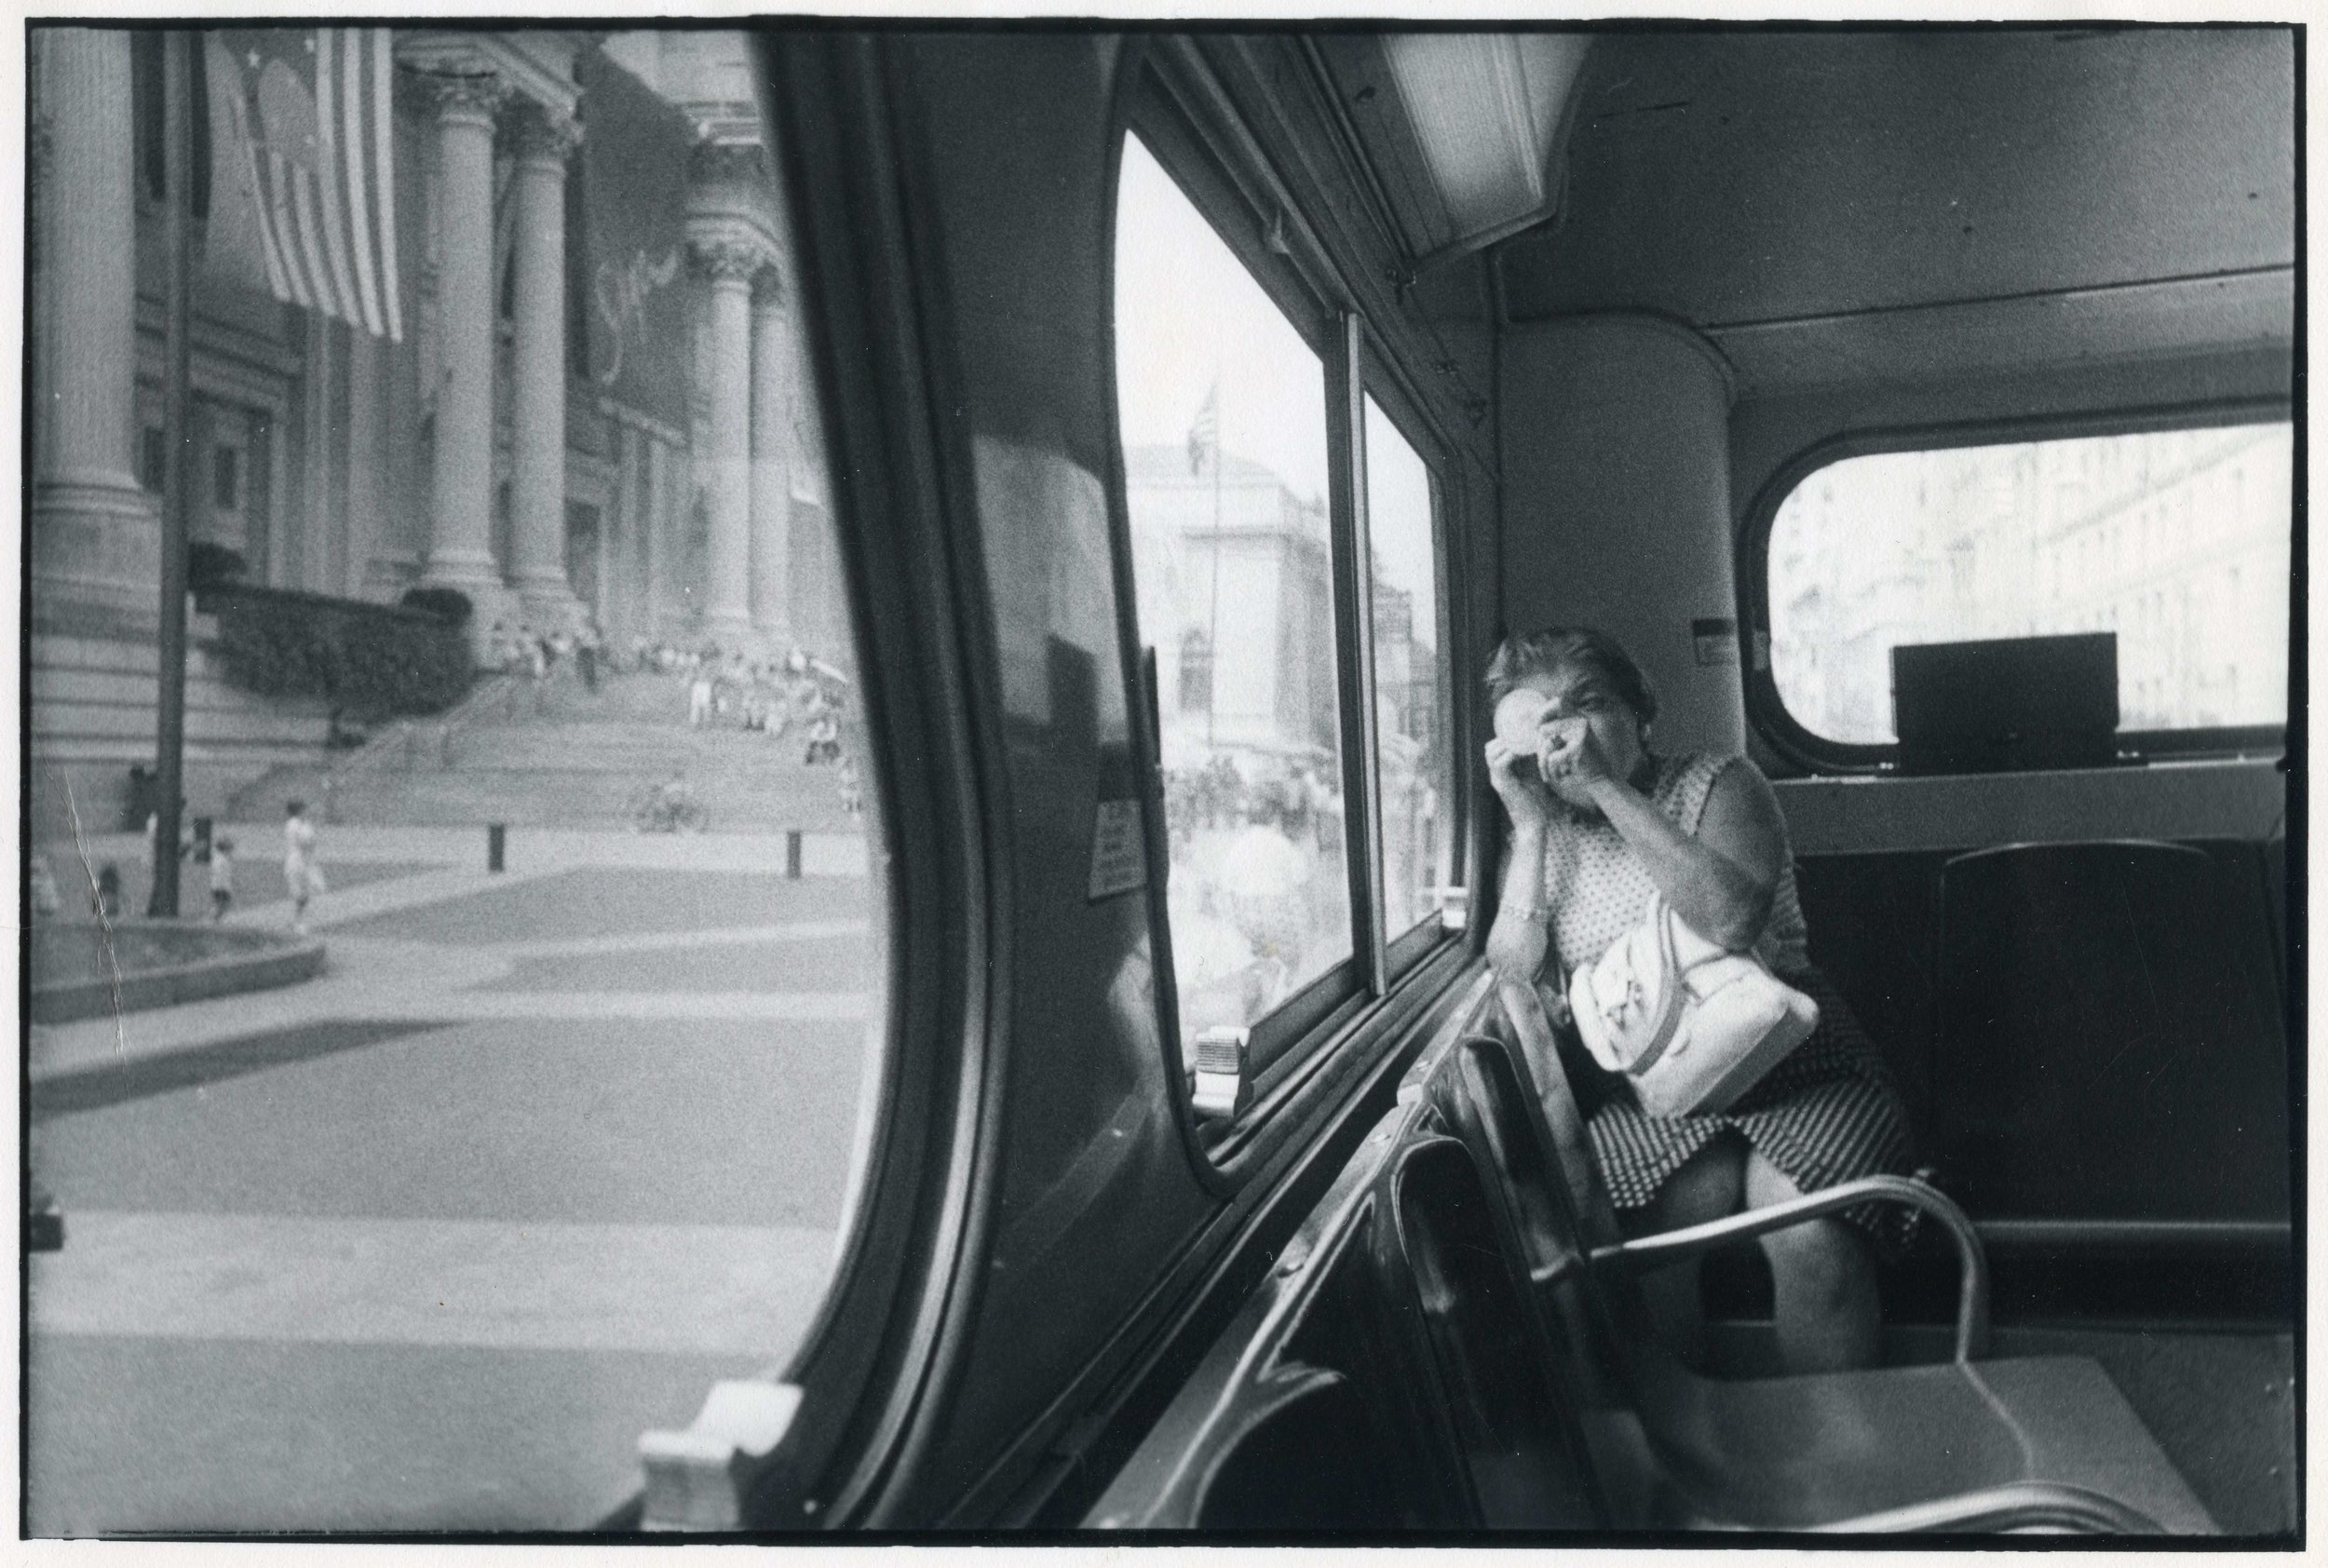 Lady On Bus, New York 1976